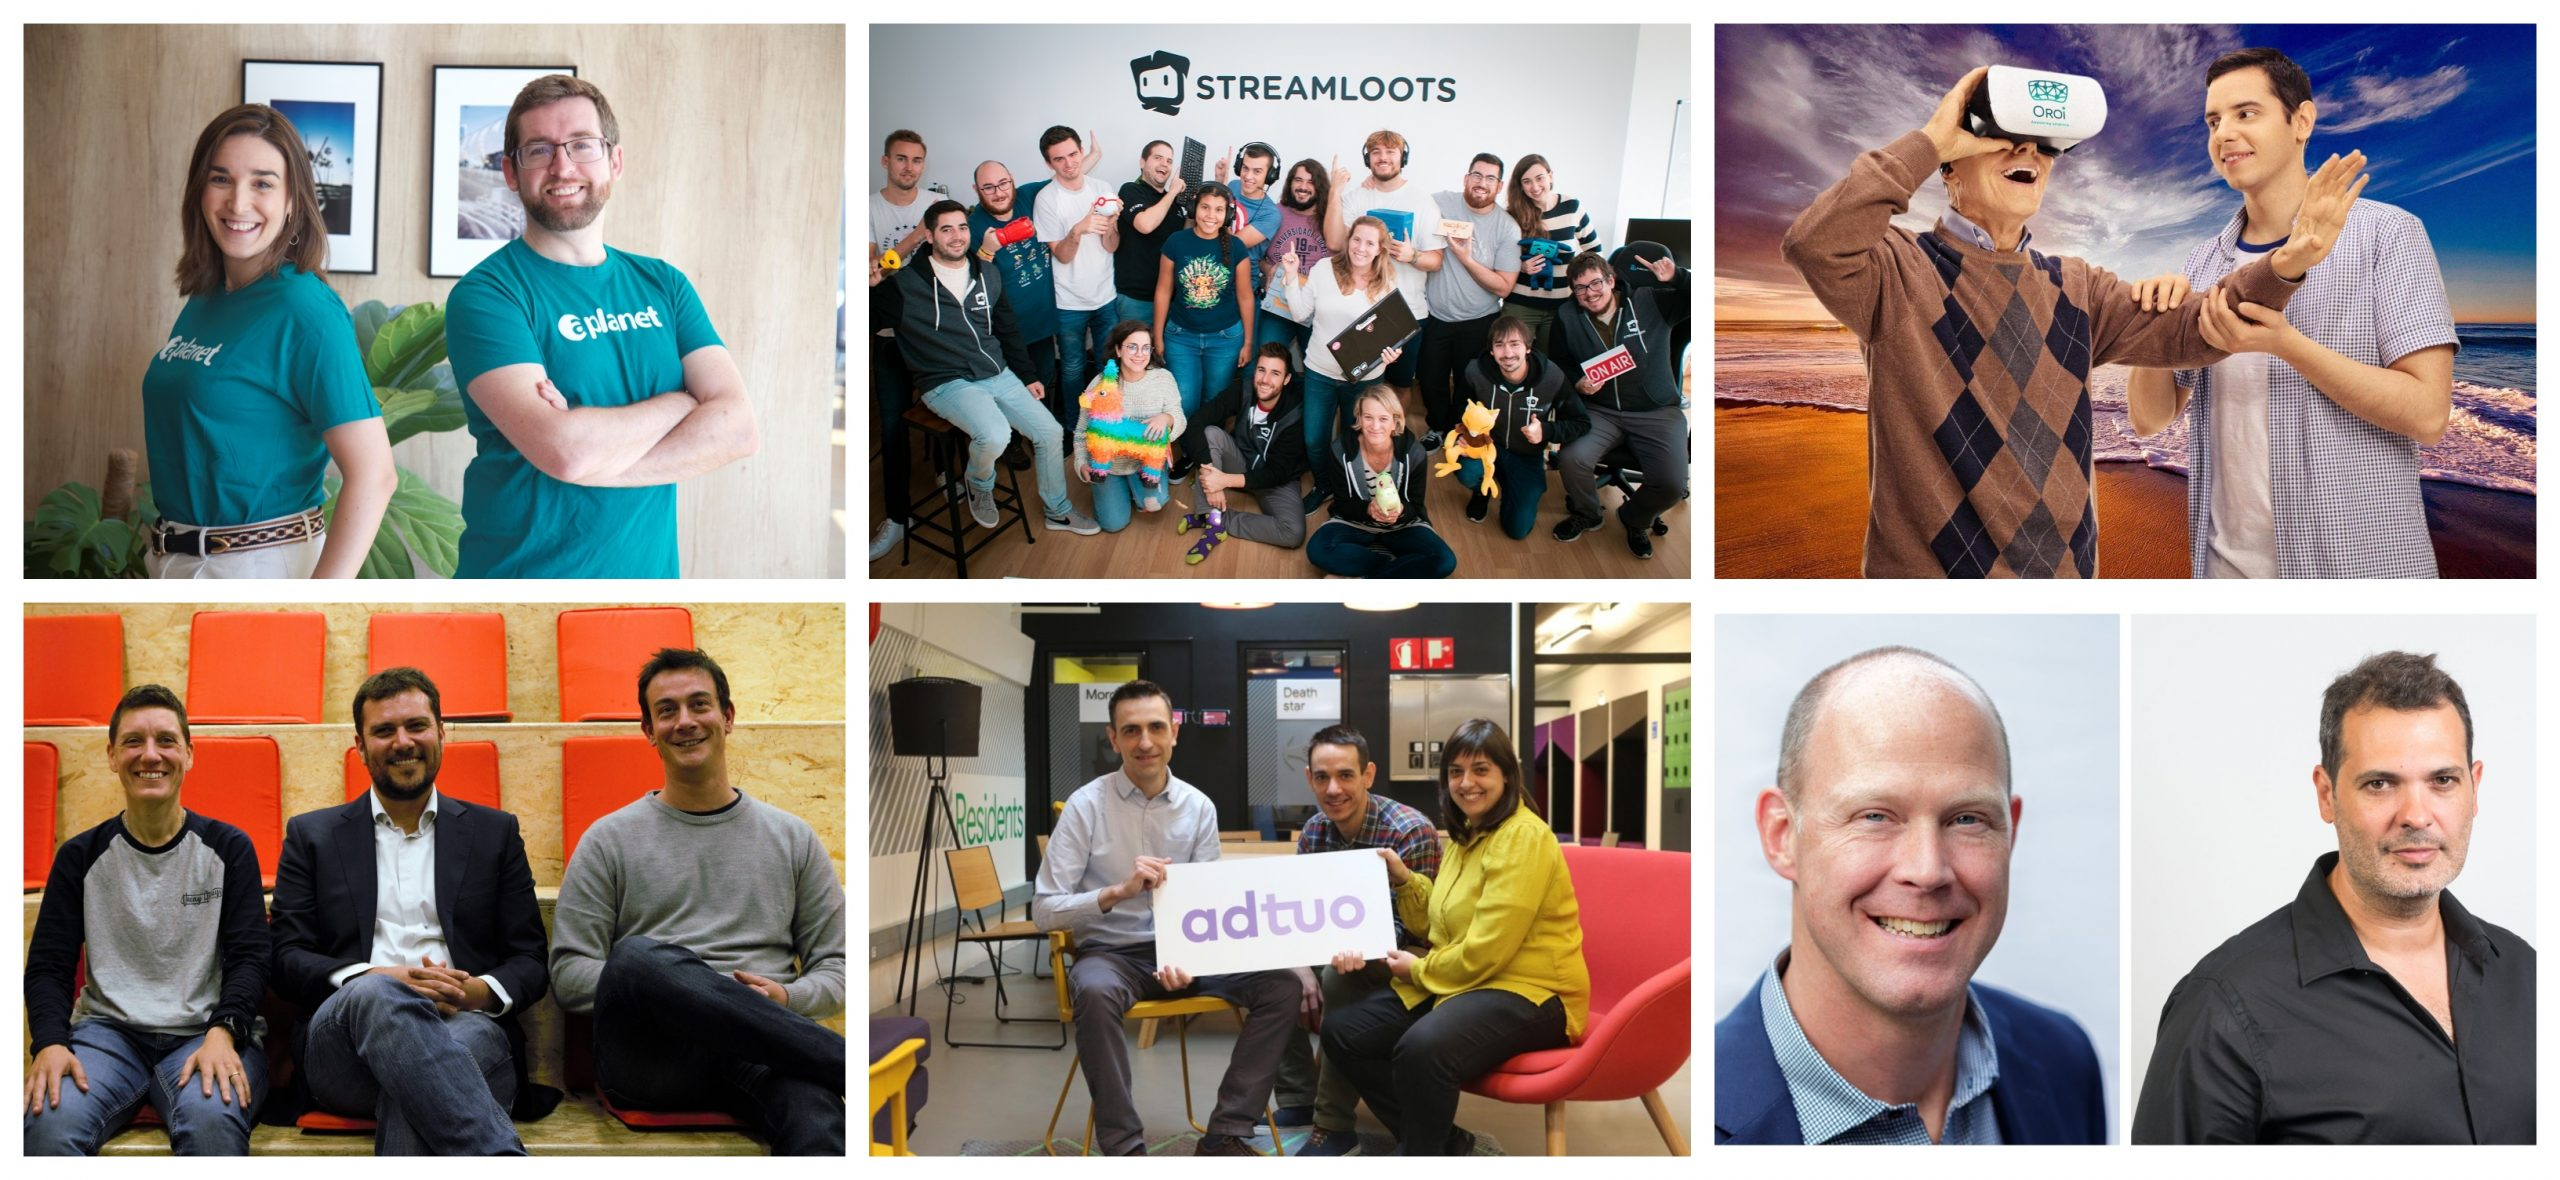 September ends €115 million invested in startups through a total of 33 operations